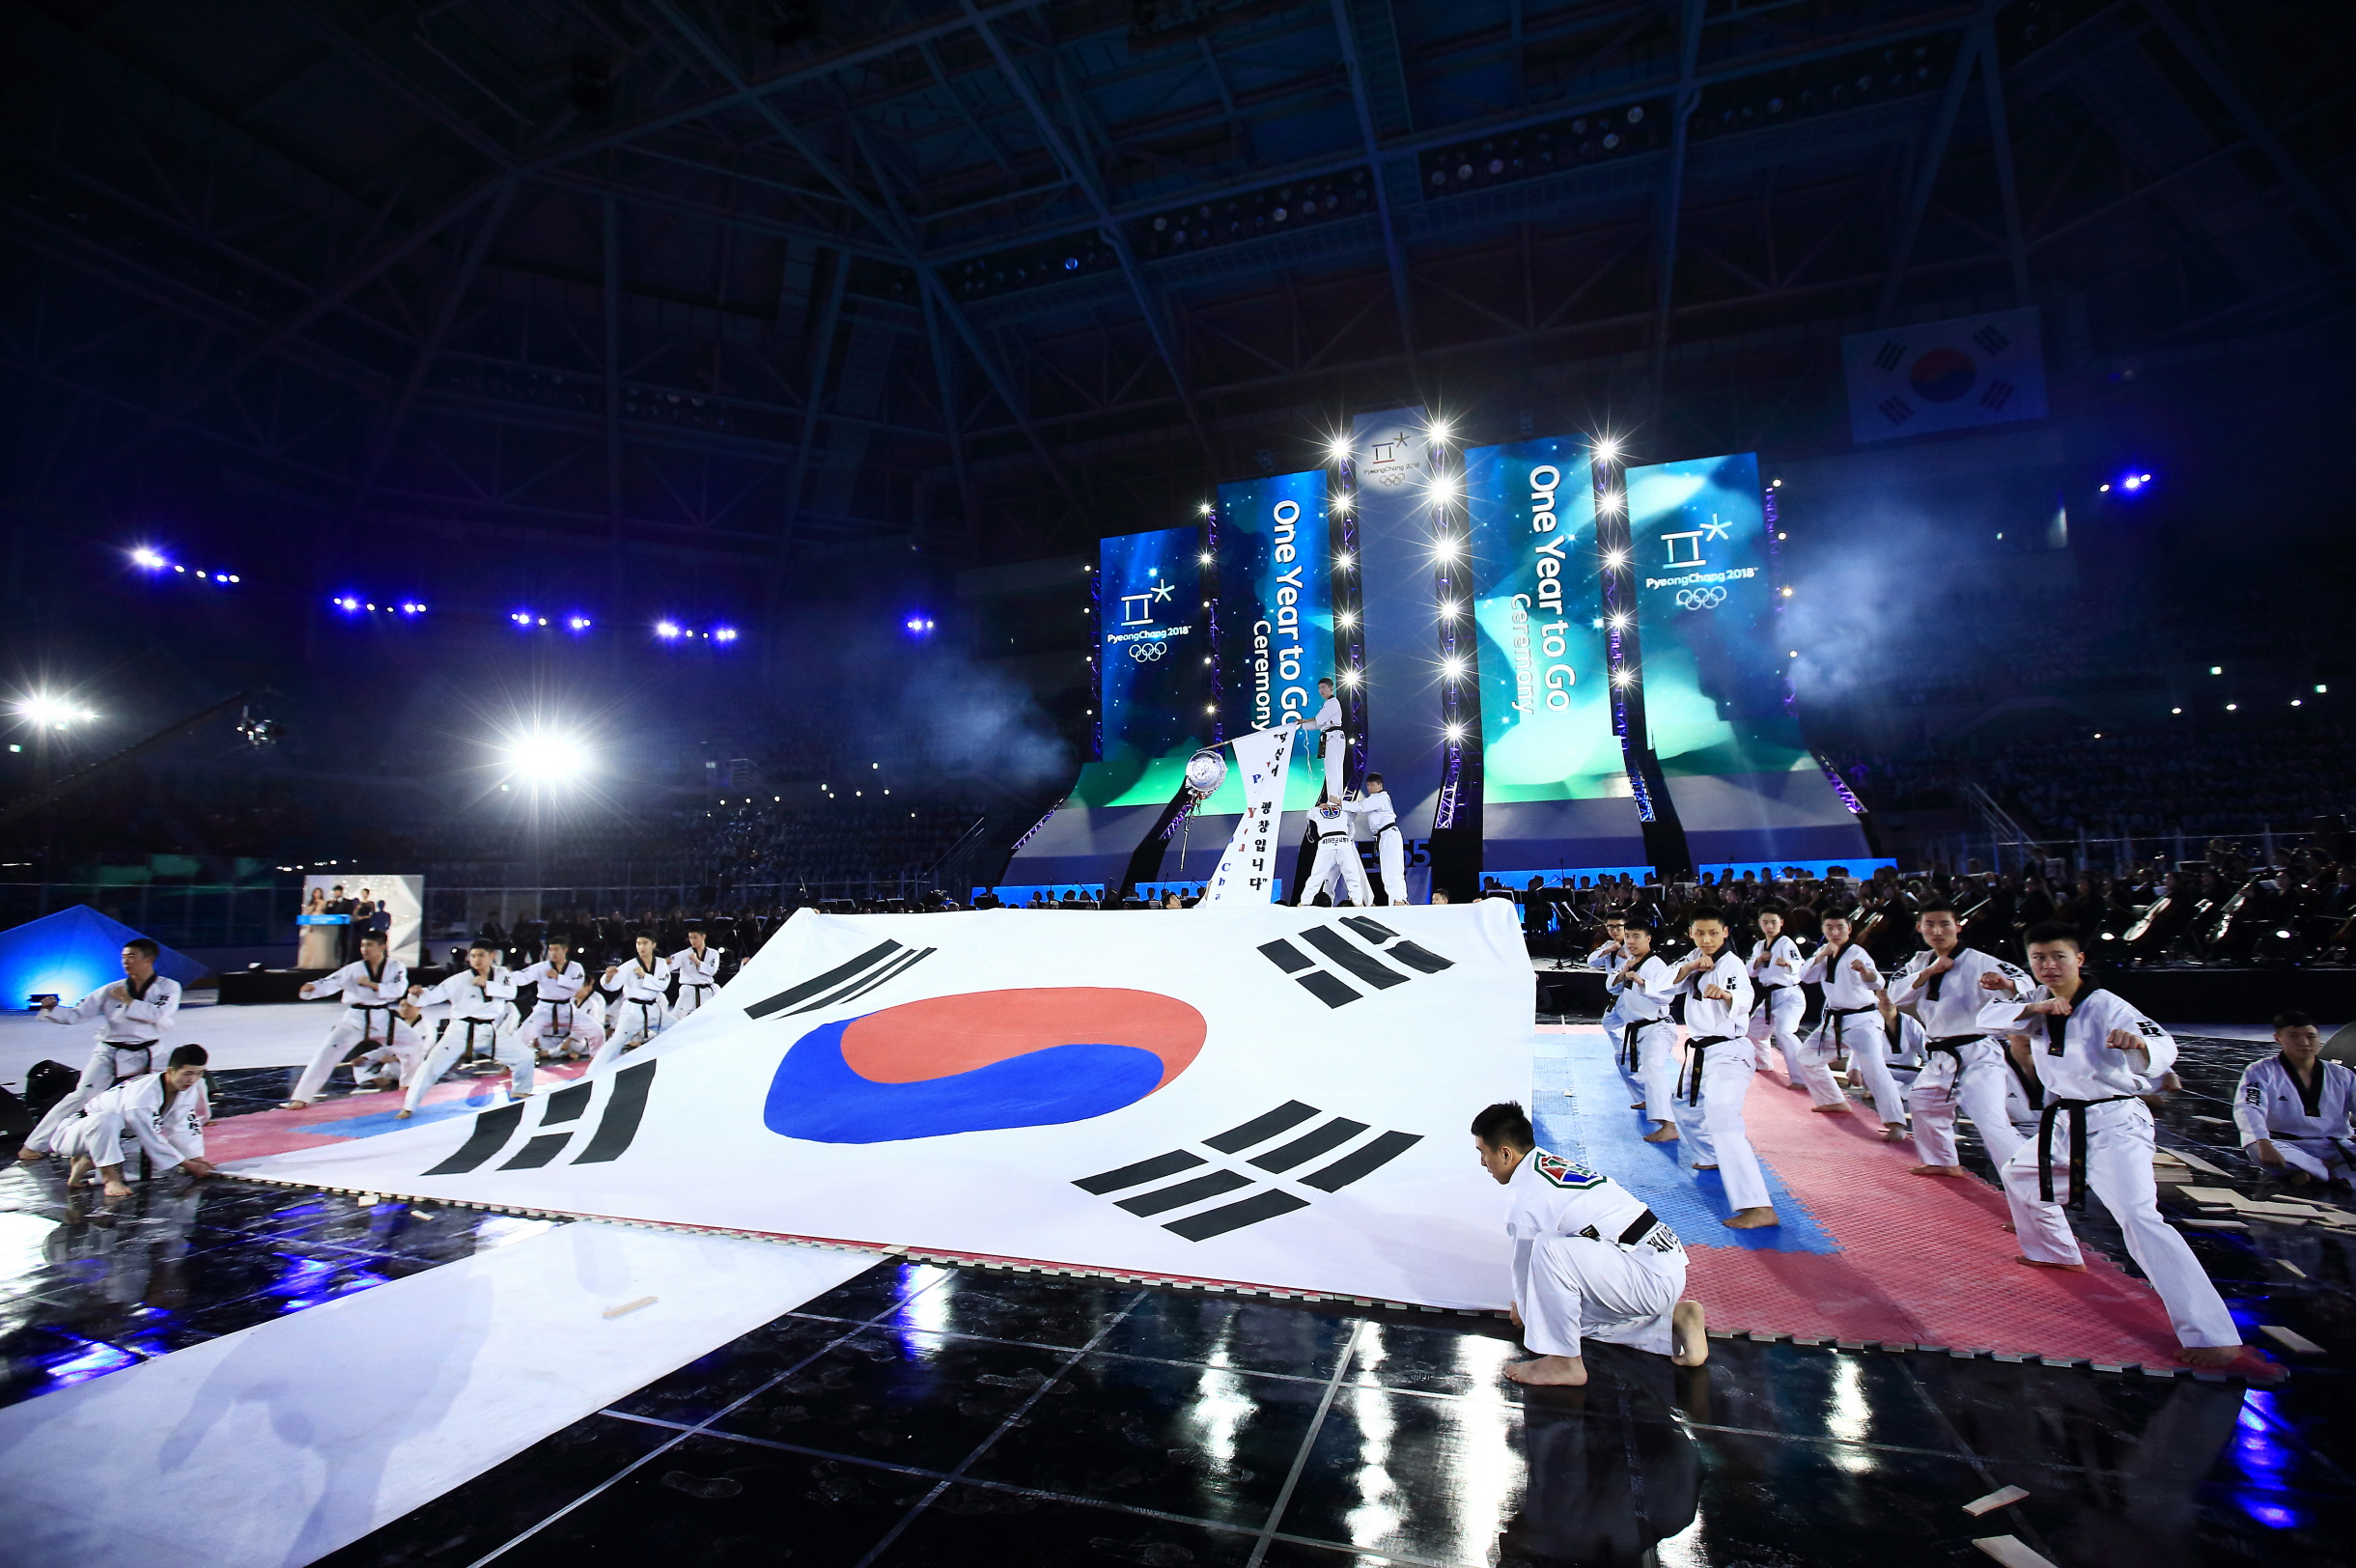 170209_PyeongChang 2018 Press Release_The Countdown has begun!_Photo 2